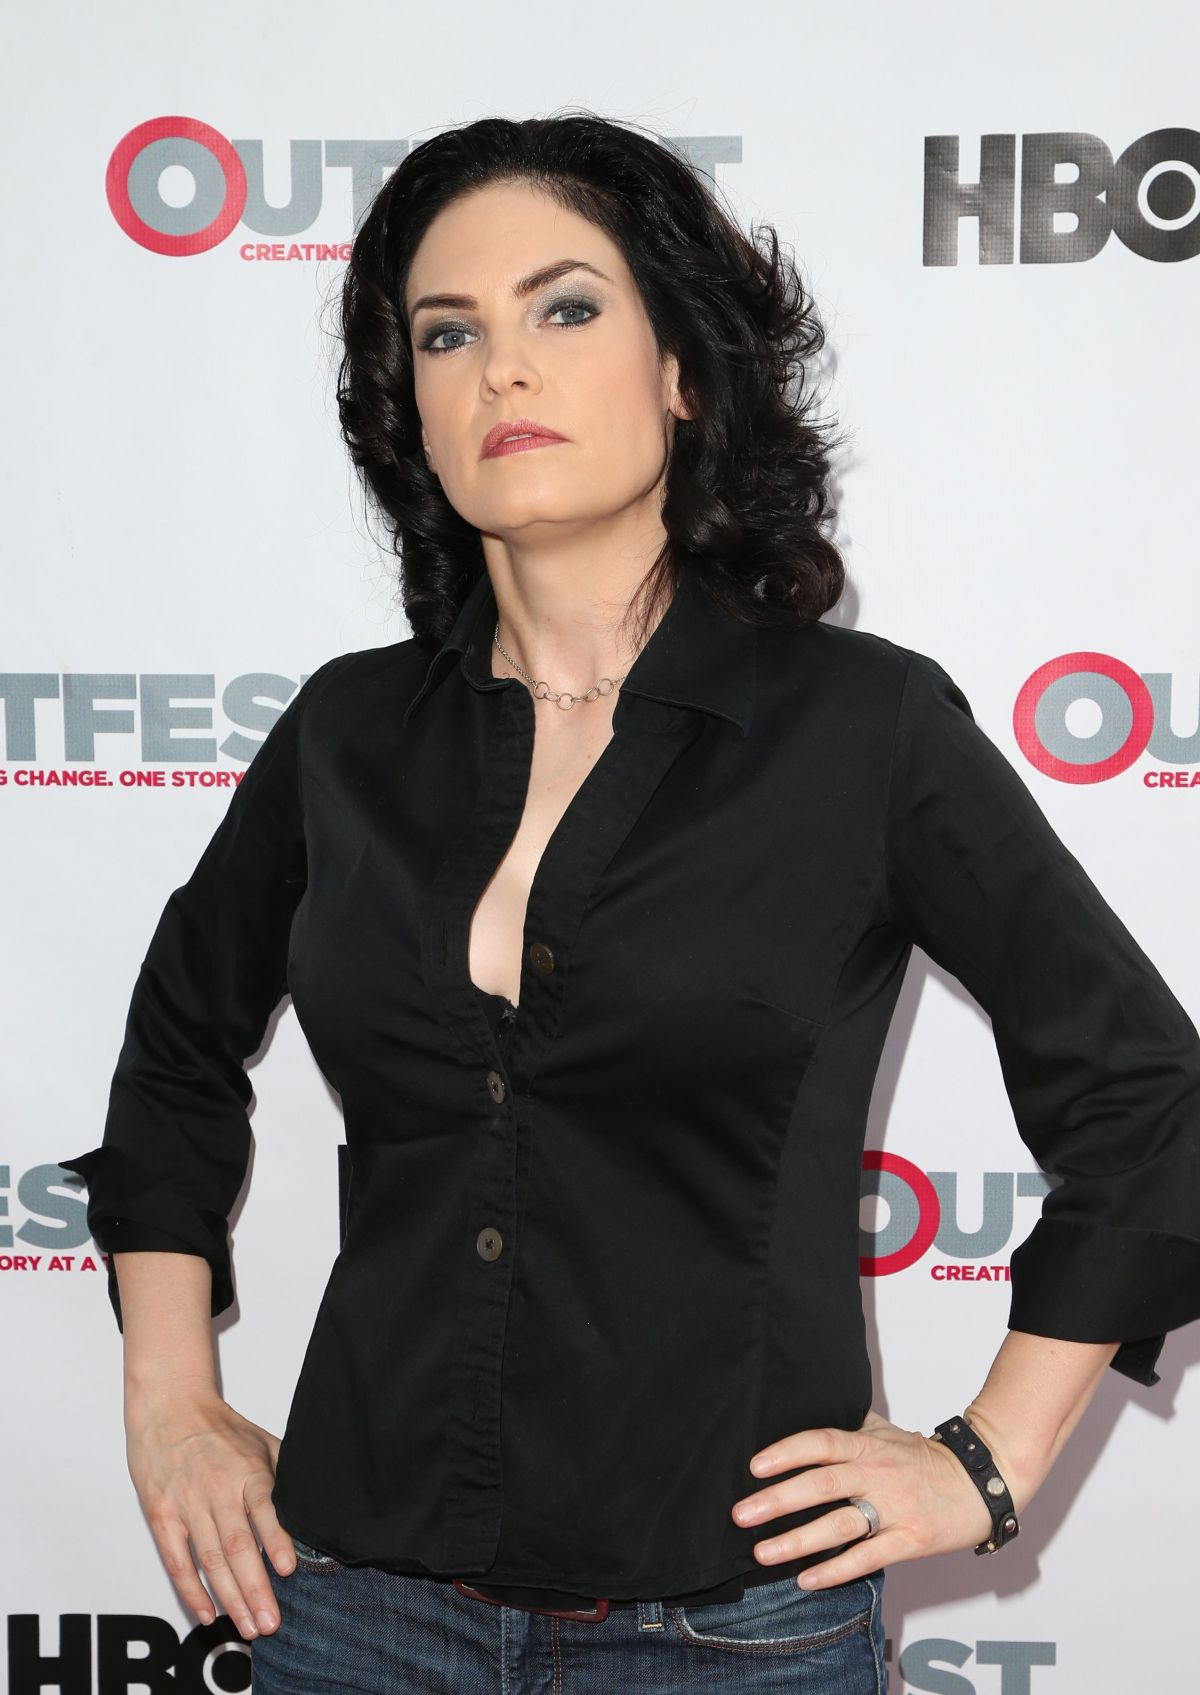 JILL BENNETT at Strangers TV Show Screening at Outfest Los Angeles LGBT Film Festival 07/15/2017